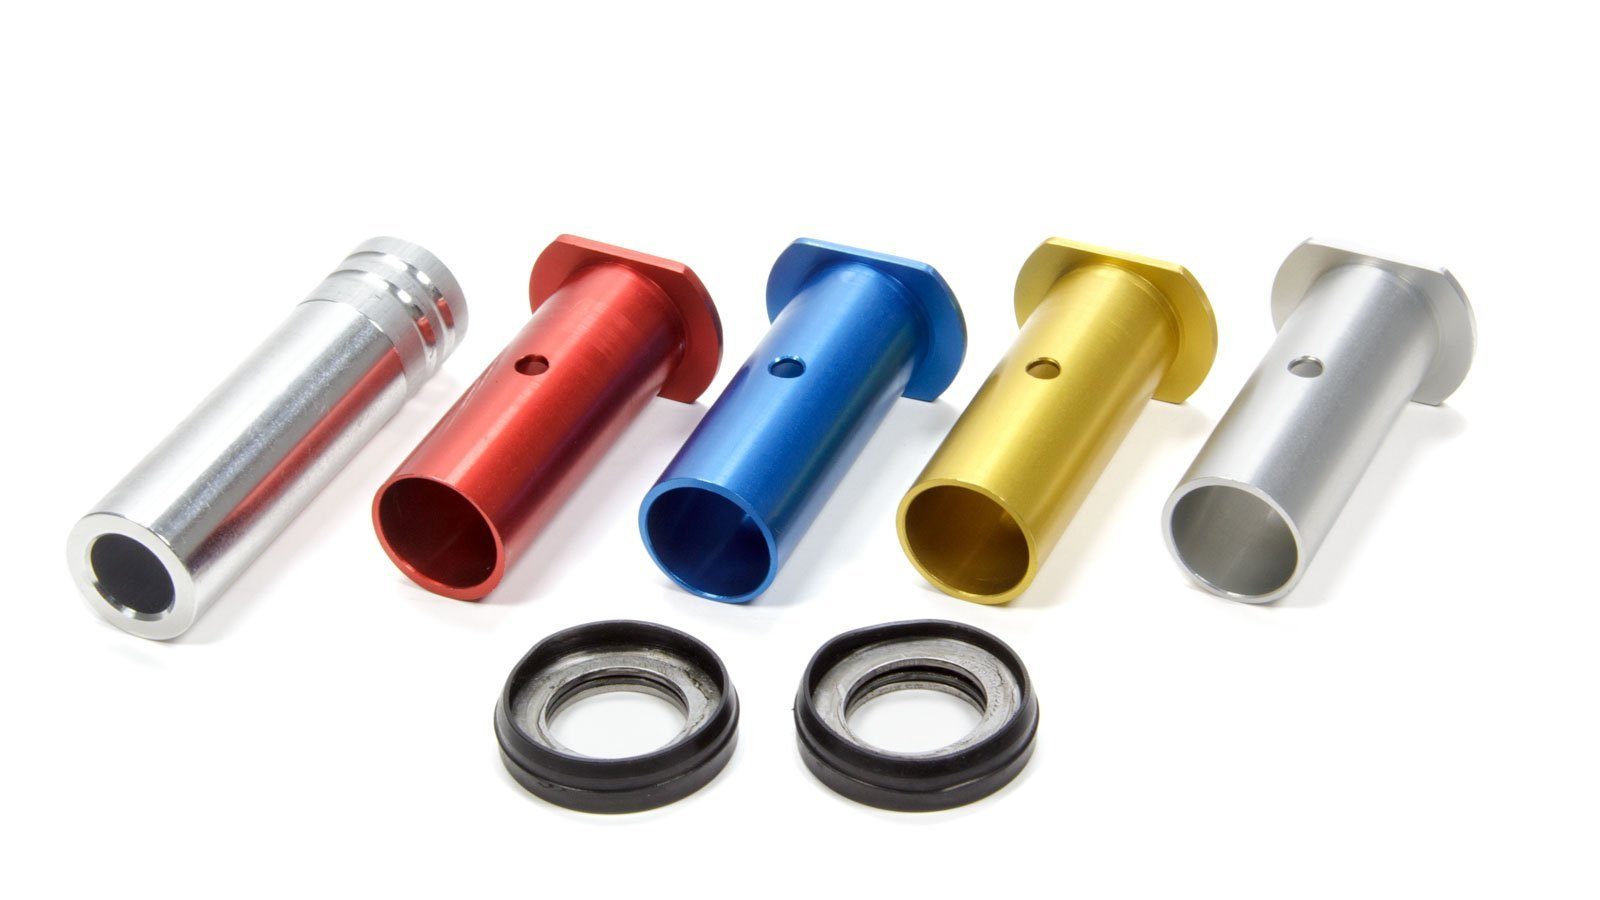 Seals-It CA860KS Sprint Camber Sleeve Kit by Seals-It